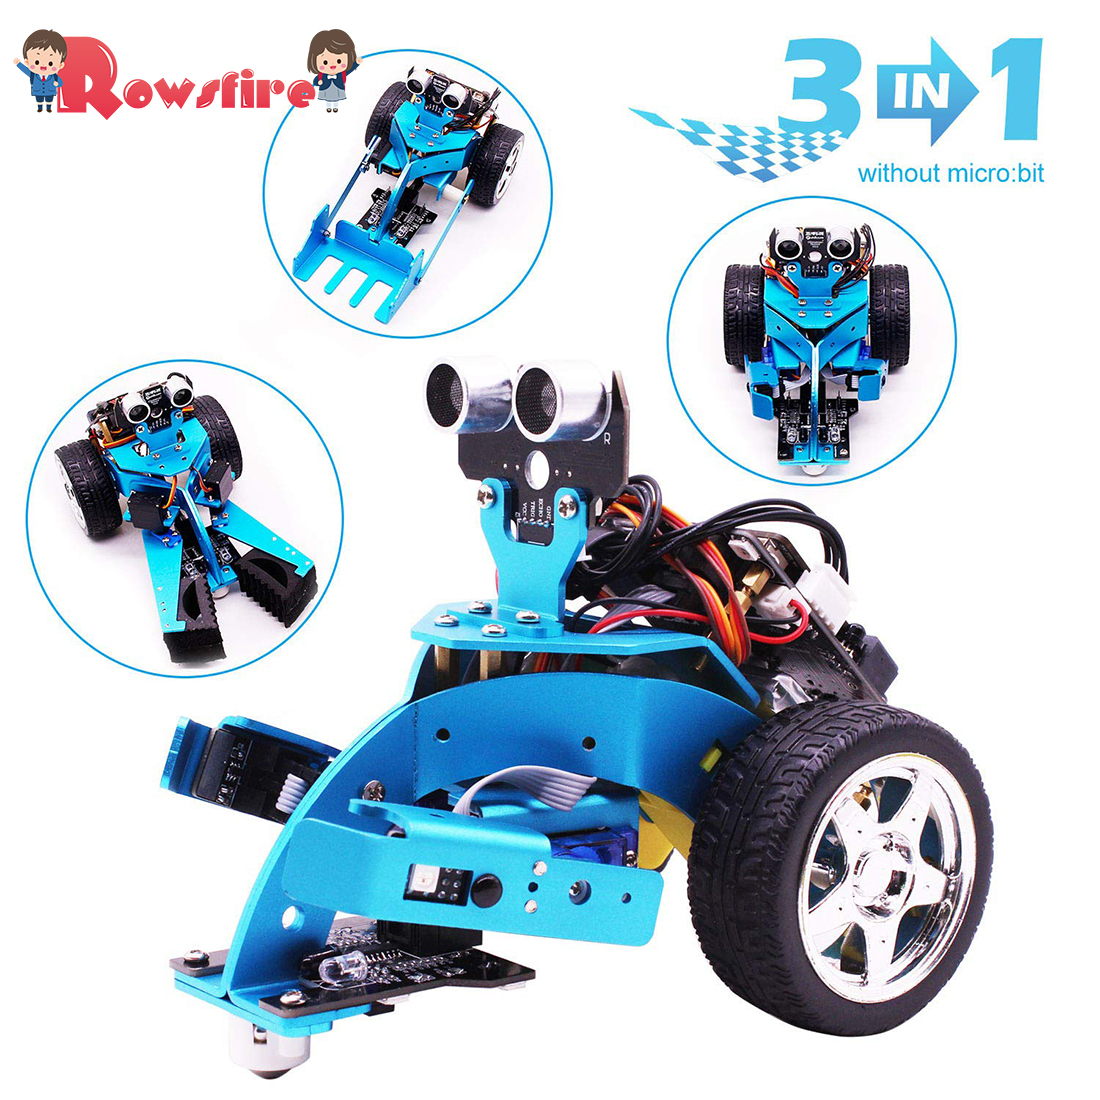 Rowsfire  3-in-1 Tem Steam Robot Car Toy ForChildren Adult Graphical Programmable Robot Car Toys +bluetooth Ir Tracking Module